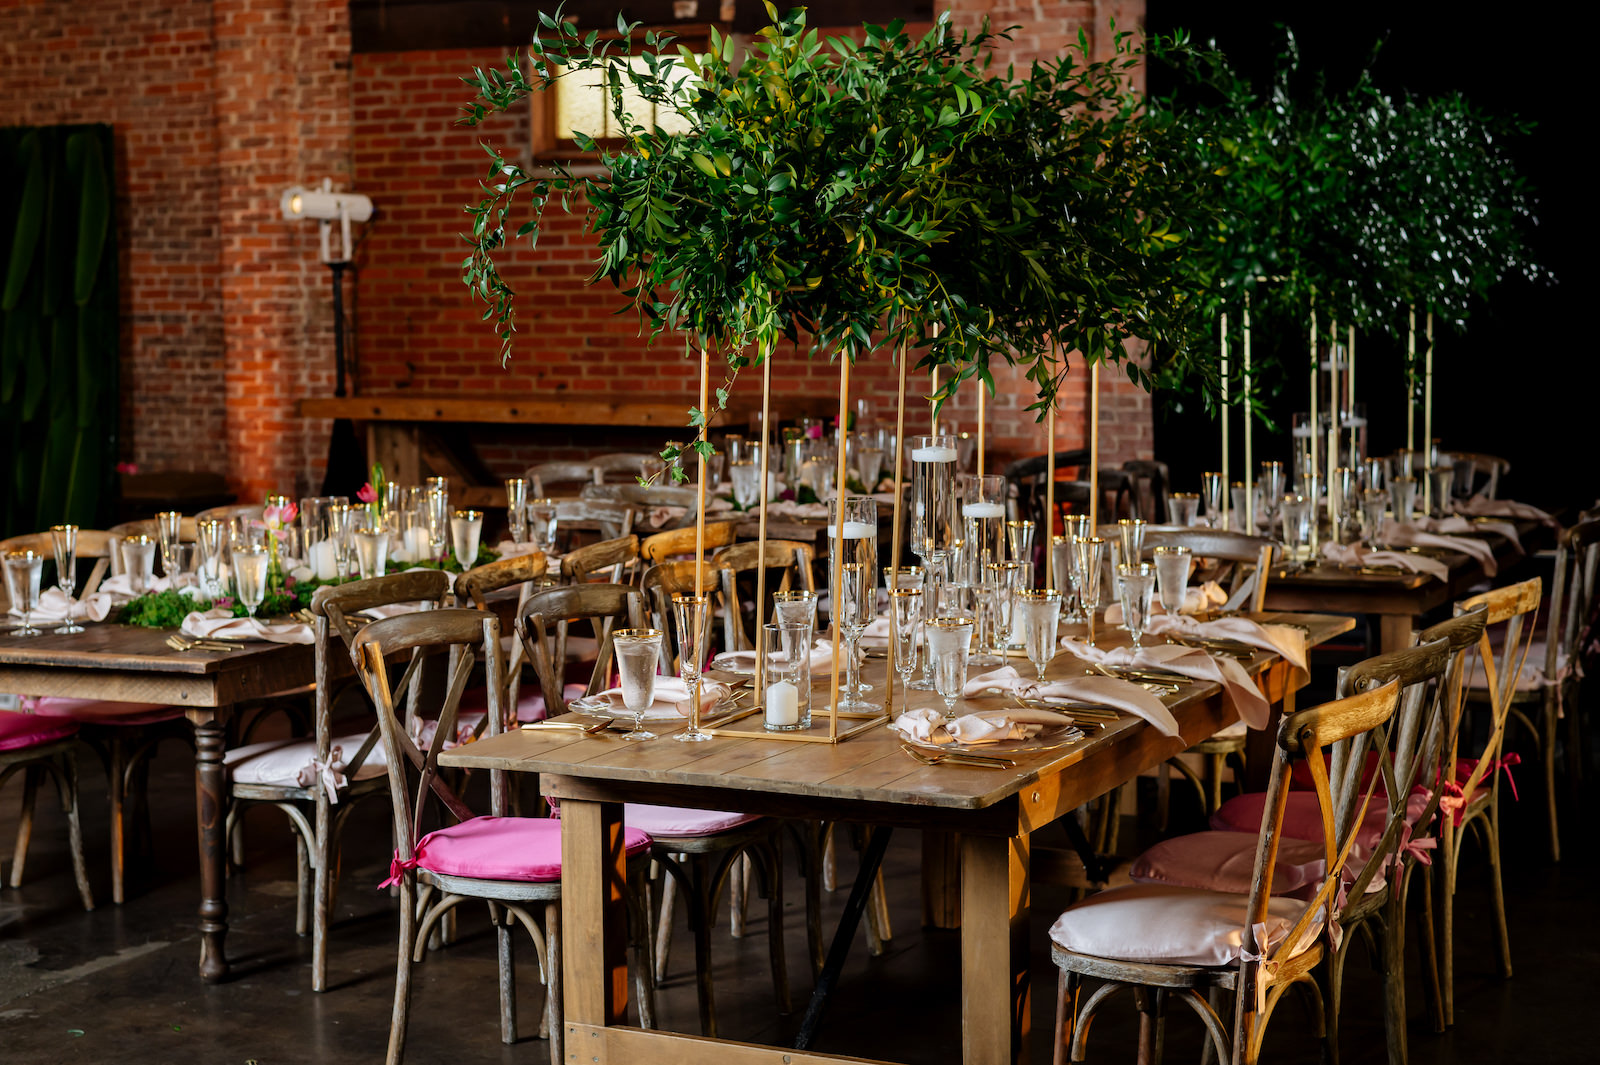 Wood Cross Back Chairs with Ombre Pink Cushions in Historic Tampa Heights Venue with Brick Walls   Wood Farm Feasting Tables with Tall Greenery Centerpieces and Candles with Moss Centerpieces   Wedding Reception Place Setting with Gold Rimmed Glassware and Gold Flatware with Gold Rim Glass Charger Plate by Kate Ryan Event Rentals